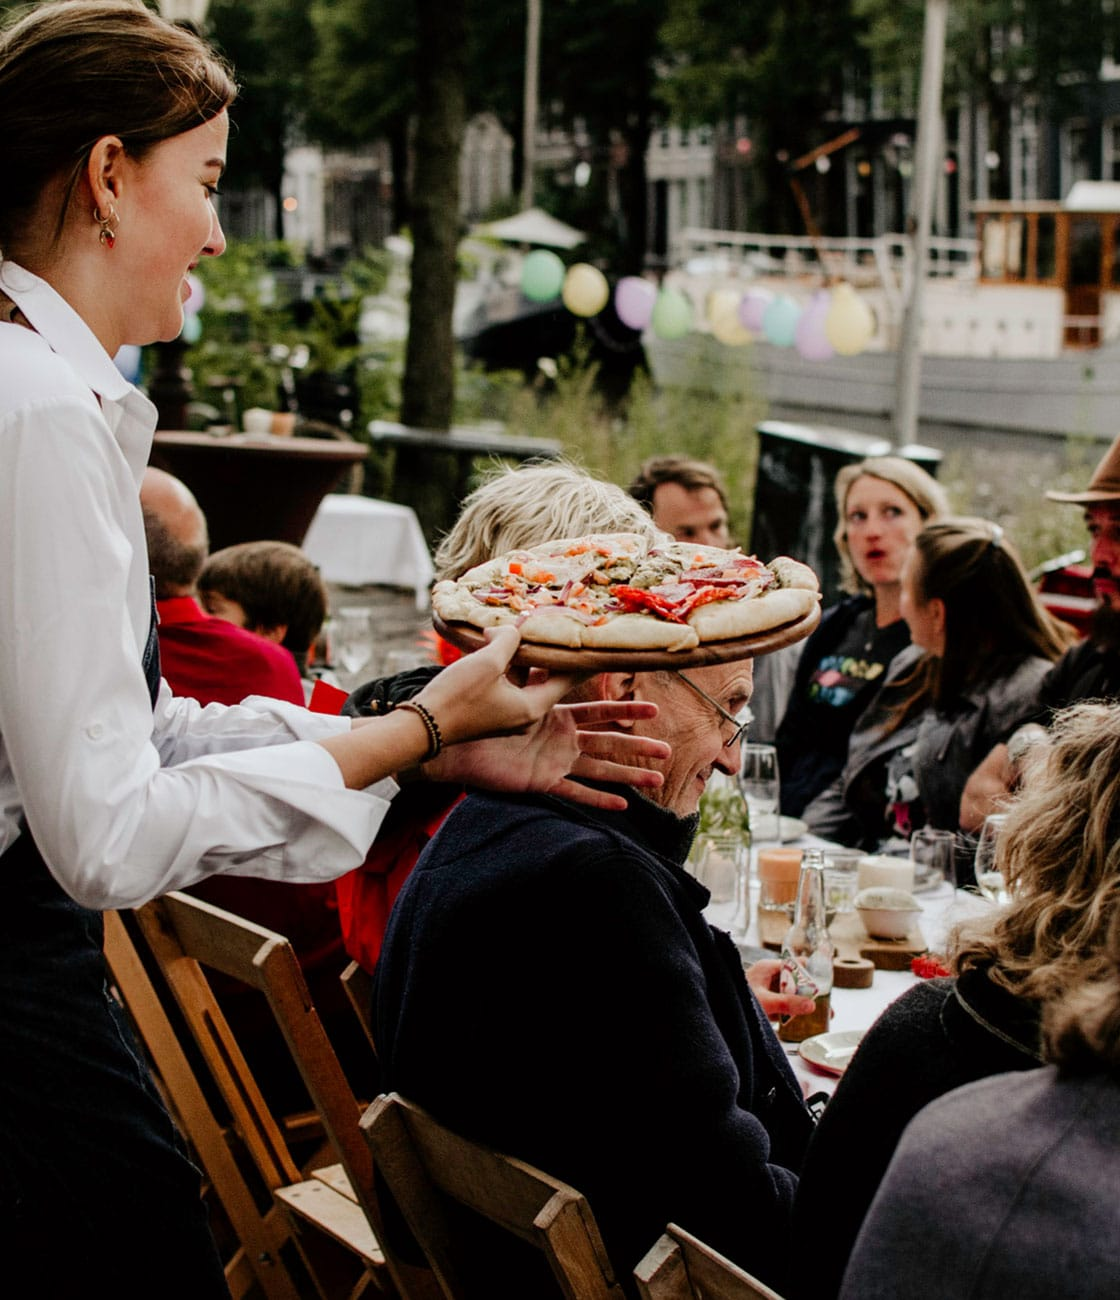 neighbourhood-pizza-max-brown-canal-district-amsterdam-15